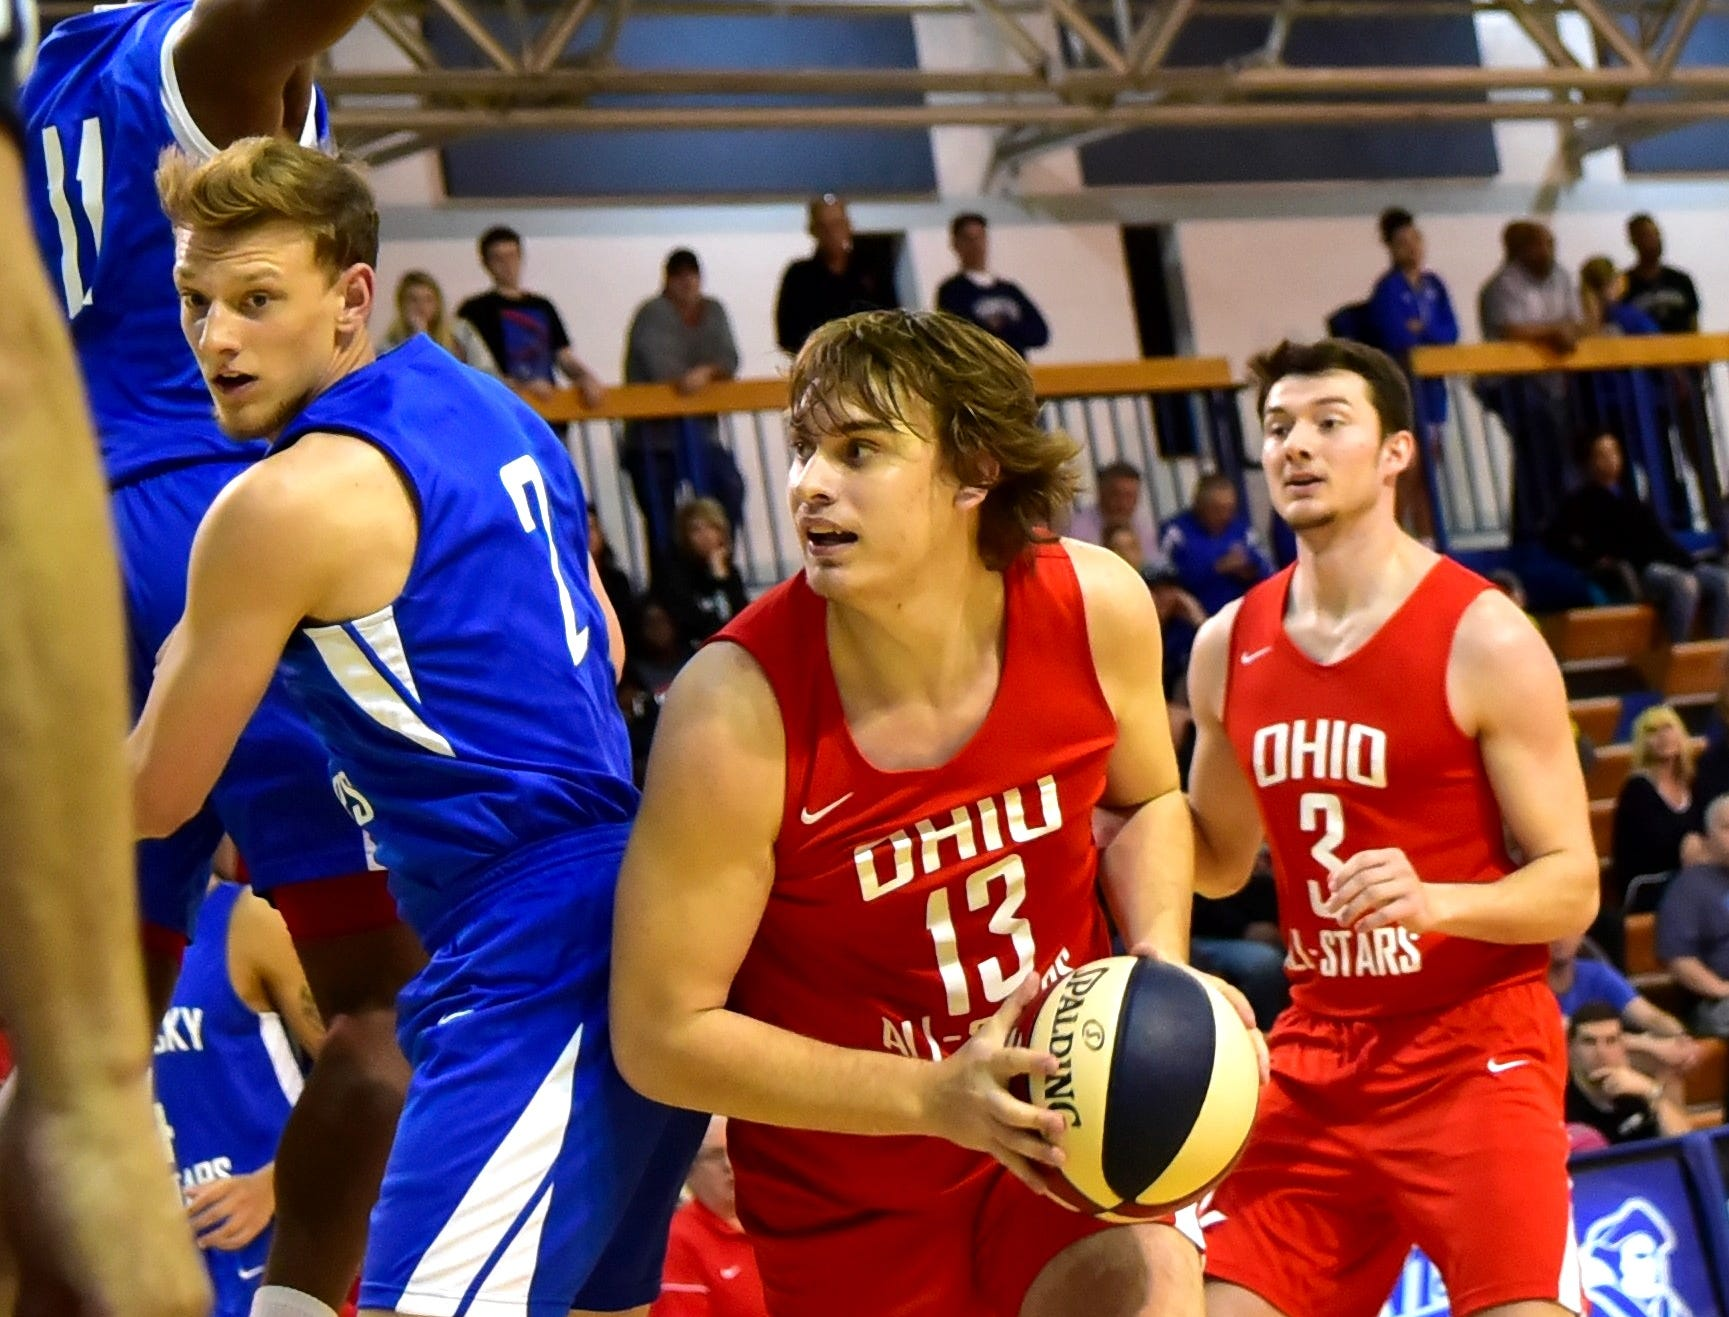 Mason Darby (13) of Oak Hill looks to put back an offensive rebound for an Ohio boys team score at the 28th Annual Ohio-Kentucky All Star Games played at Thomas More University, April 13, 2019